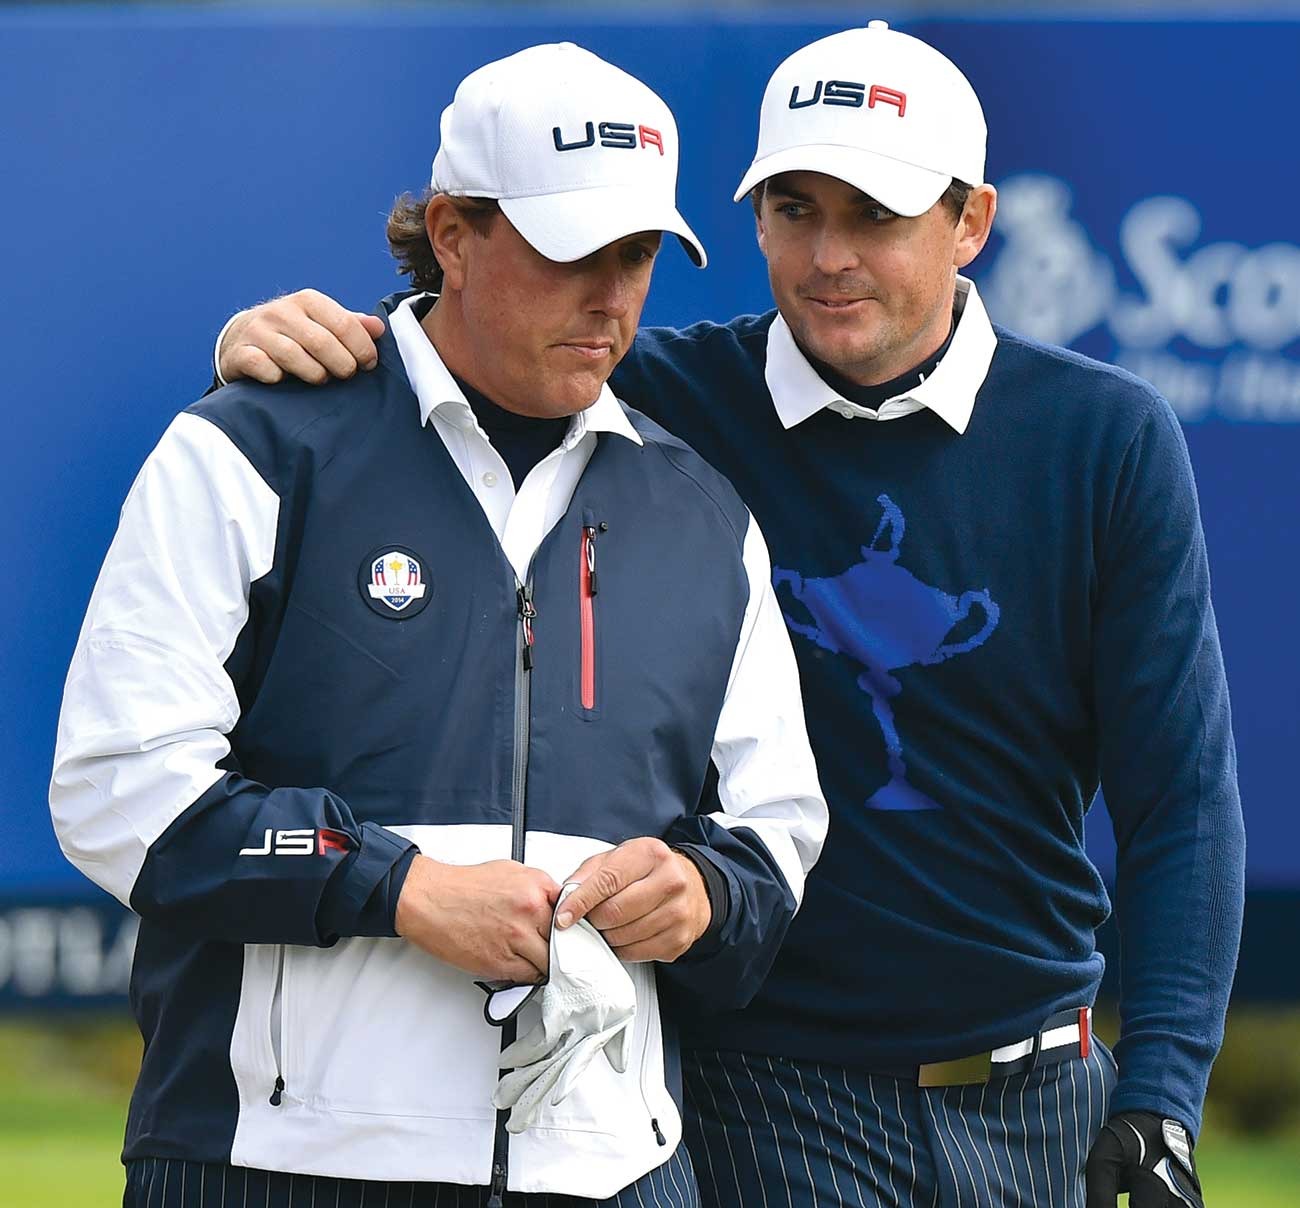 Phil Mickelson and Keegan Bradley were benched after a 1-1 Friday.